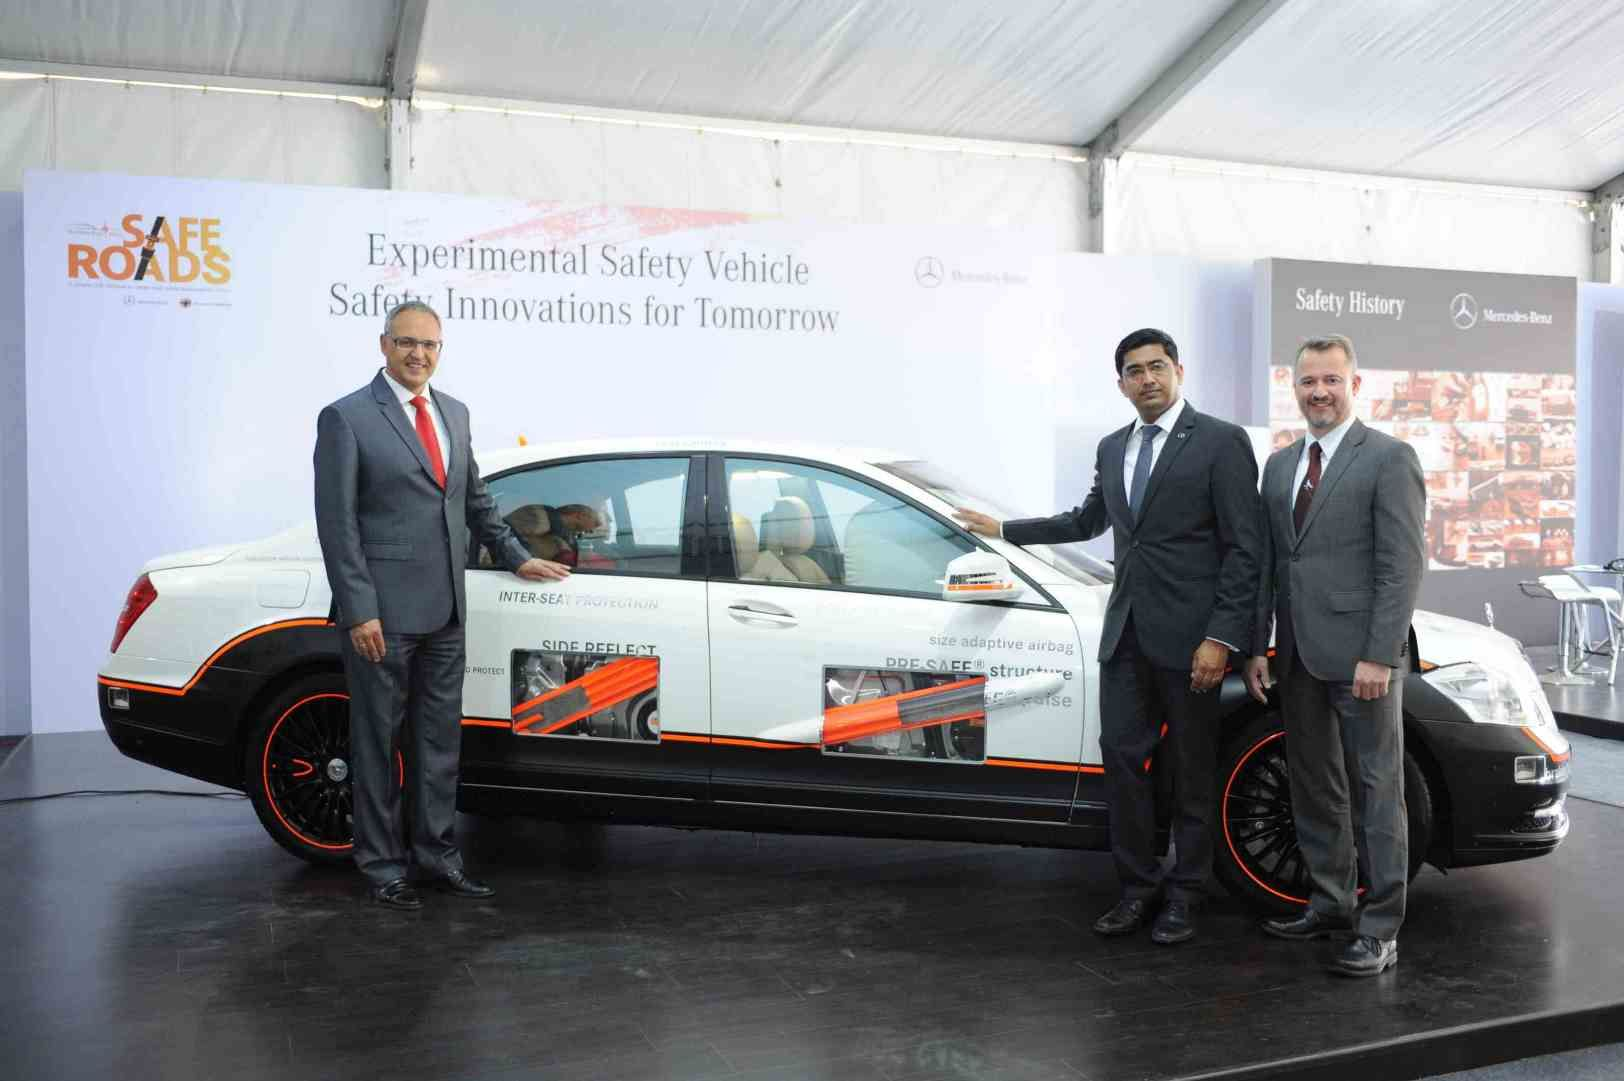 Mercedes-Benz India 'Safe Roads' initiative to educate traffic safety (4)